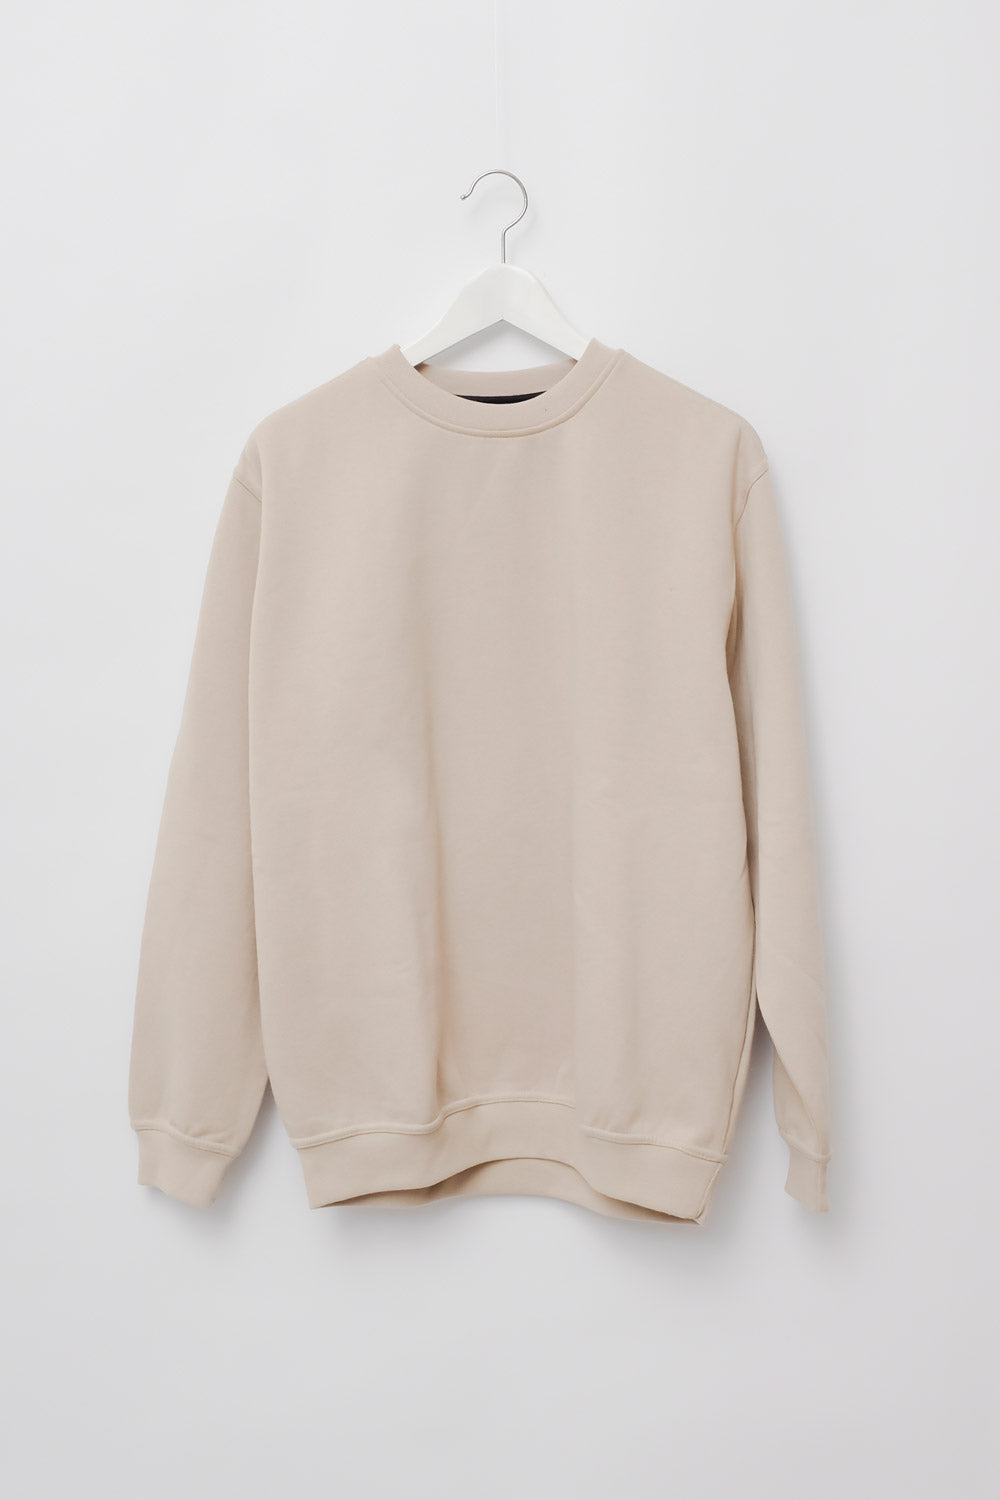 0017_CLEAN CREAM VINTAGE OVERSIZE SWEATER